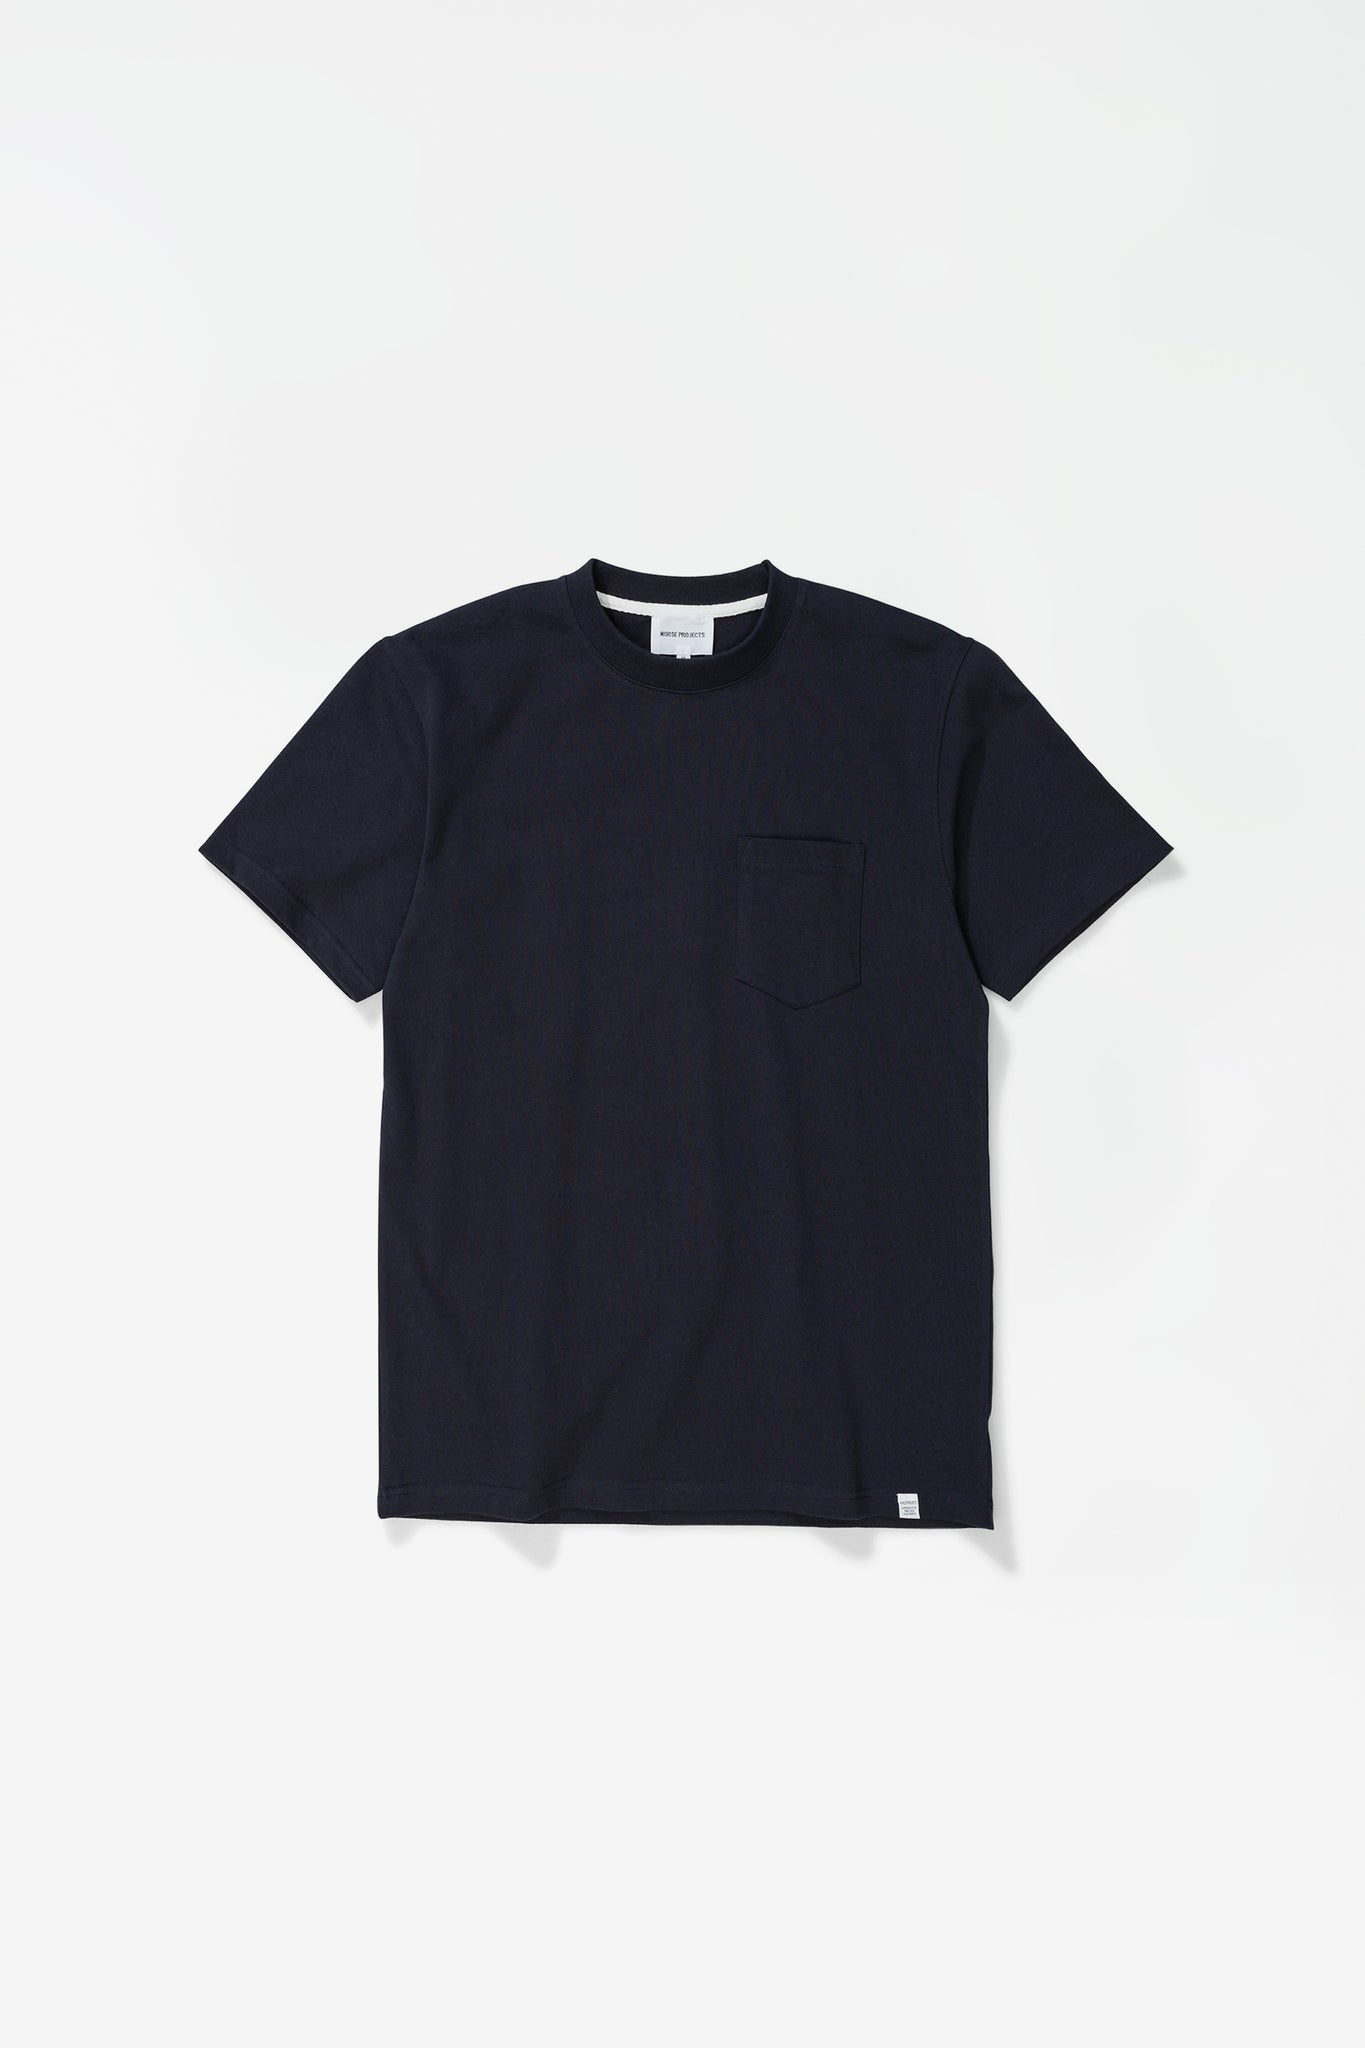 Johannes Pocket SS dark navy